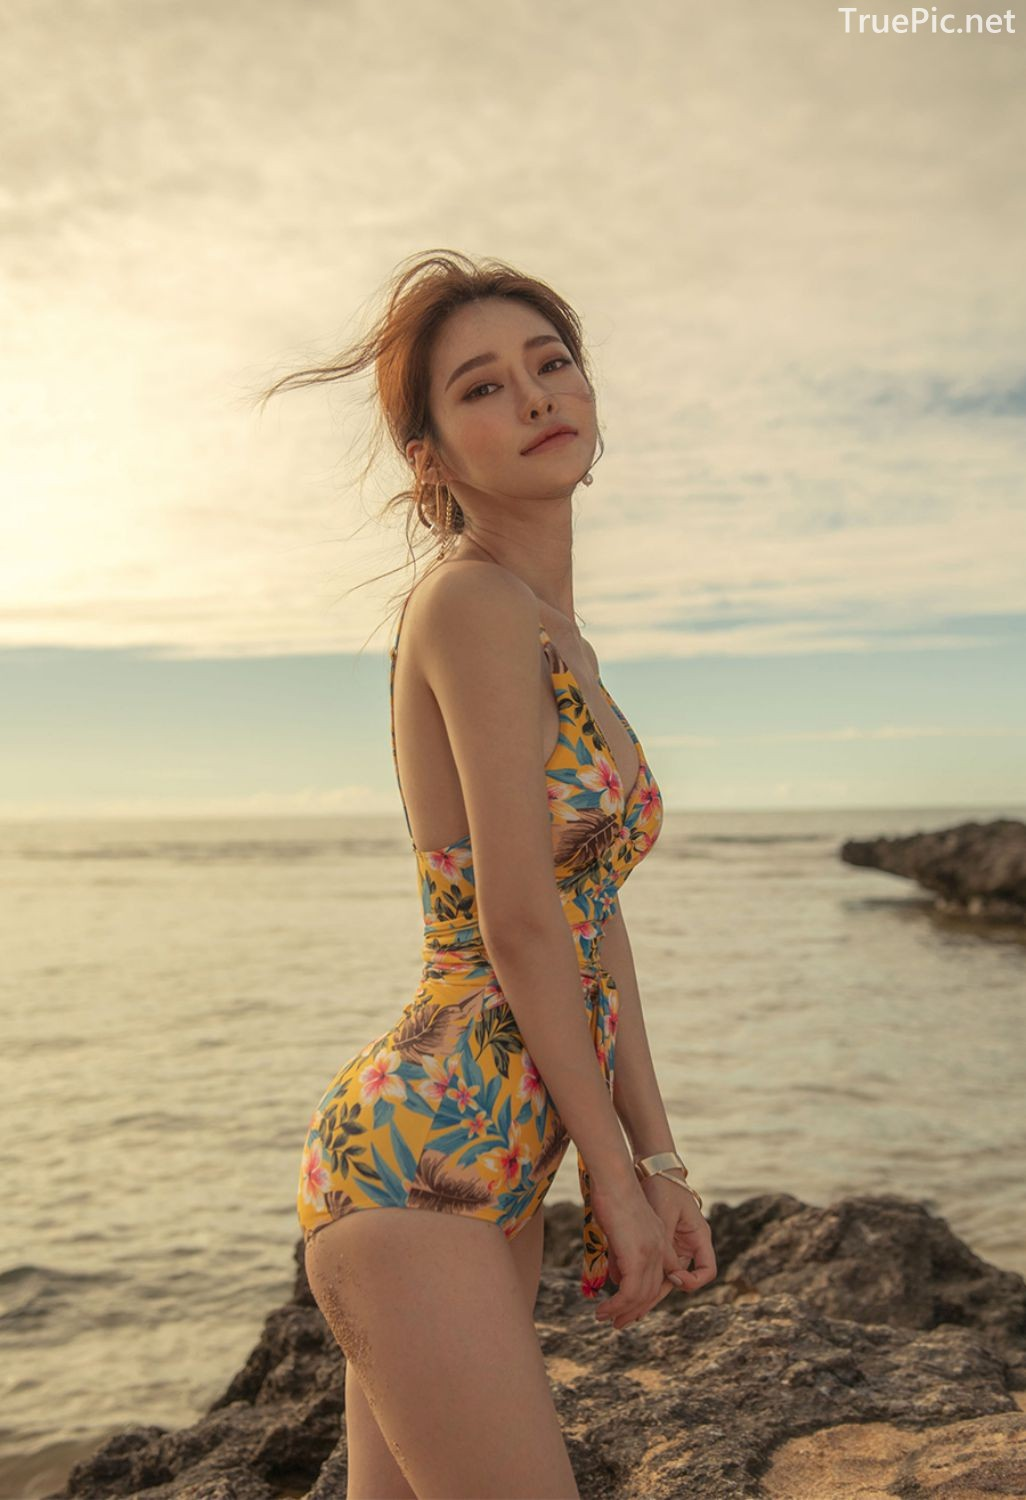 Korean Fashion Model - Kim Moon Hee as an Angel in Summer Swimsuit - TruePic.net - Picture 7